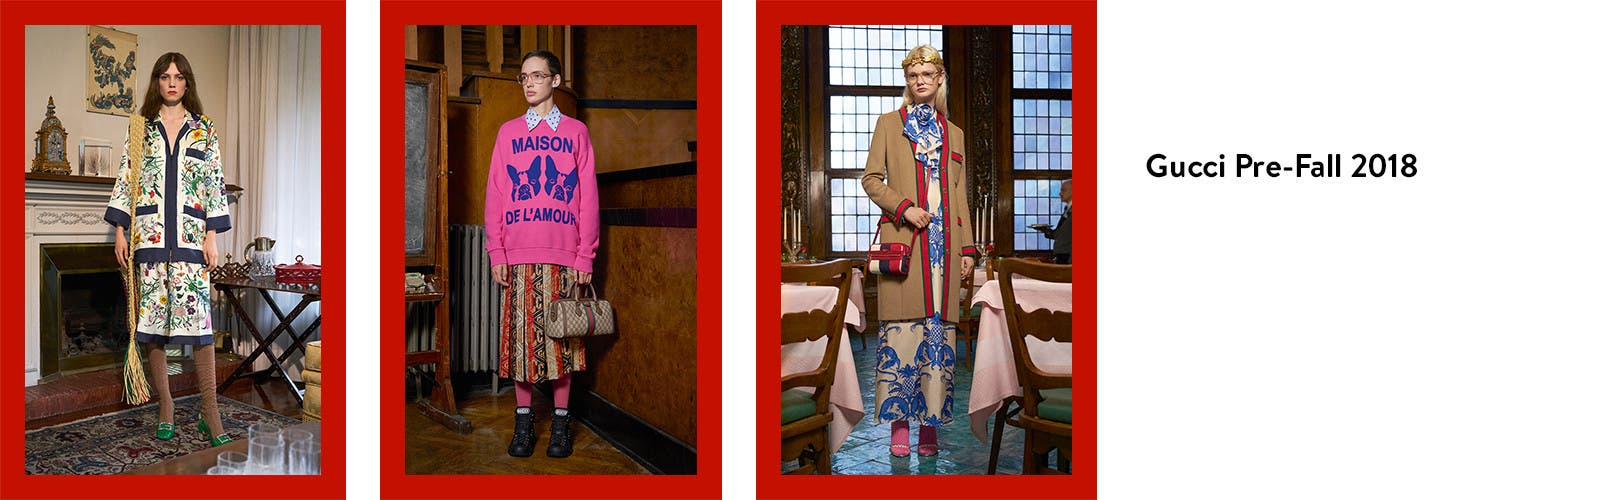 Gucci pre-fall 2018 clothing for women.